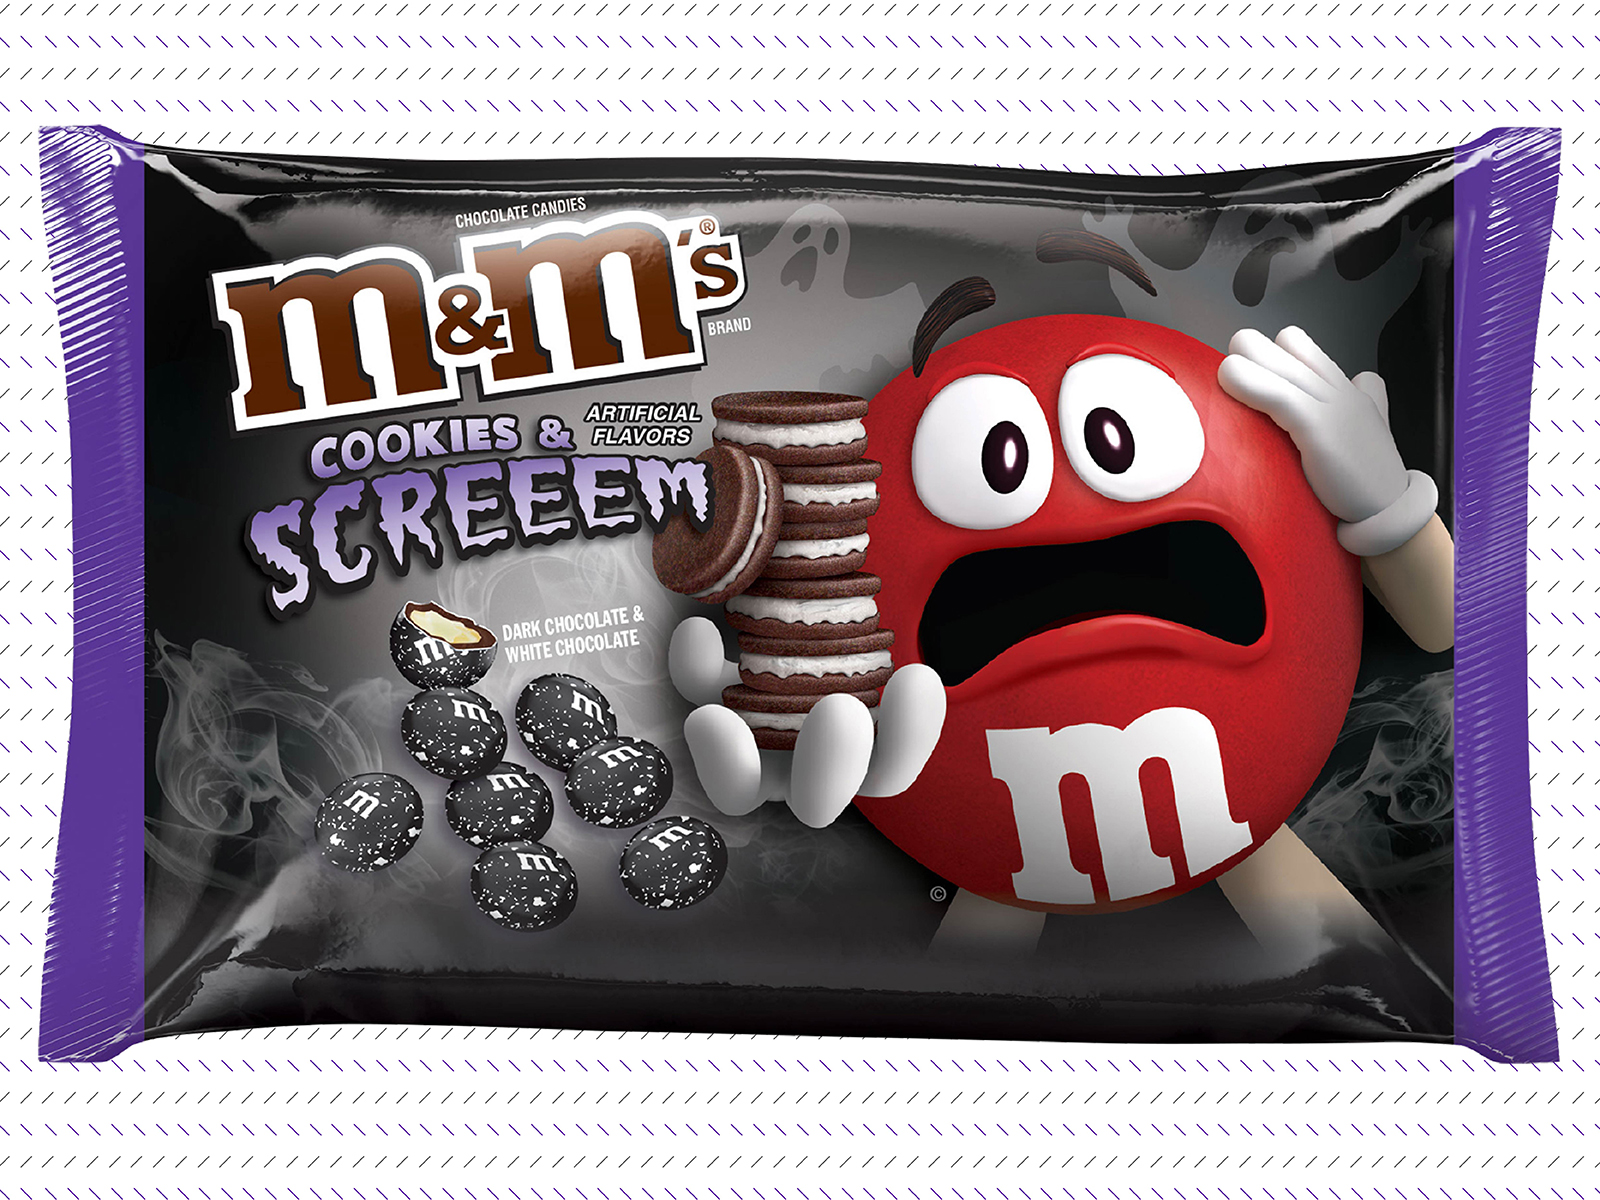 cookies and cream flavored mms